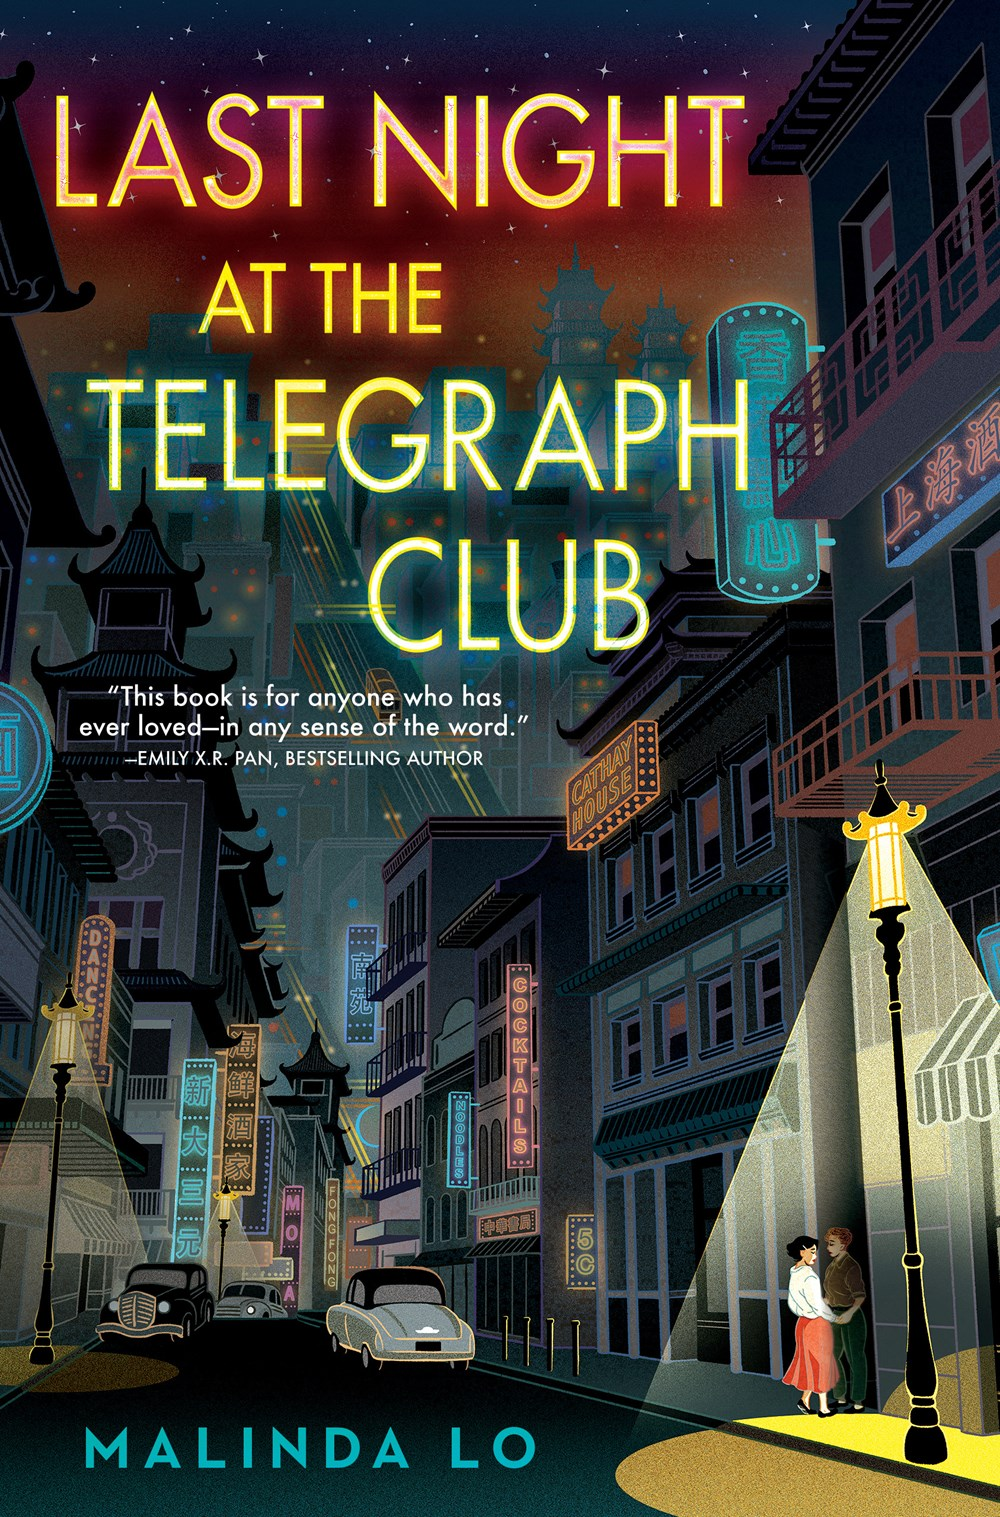 The Last Night at the Telegraph Club